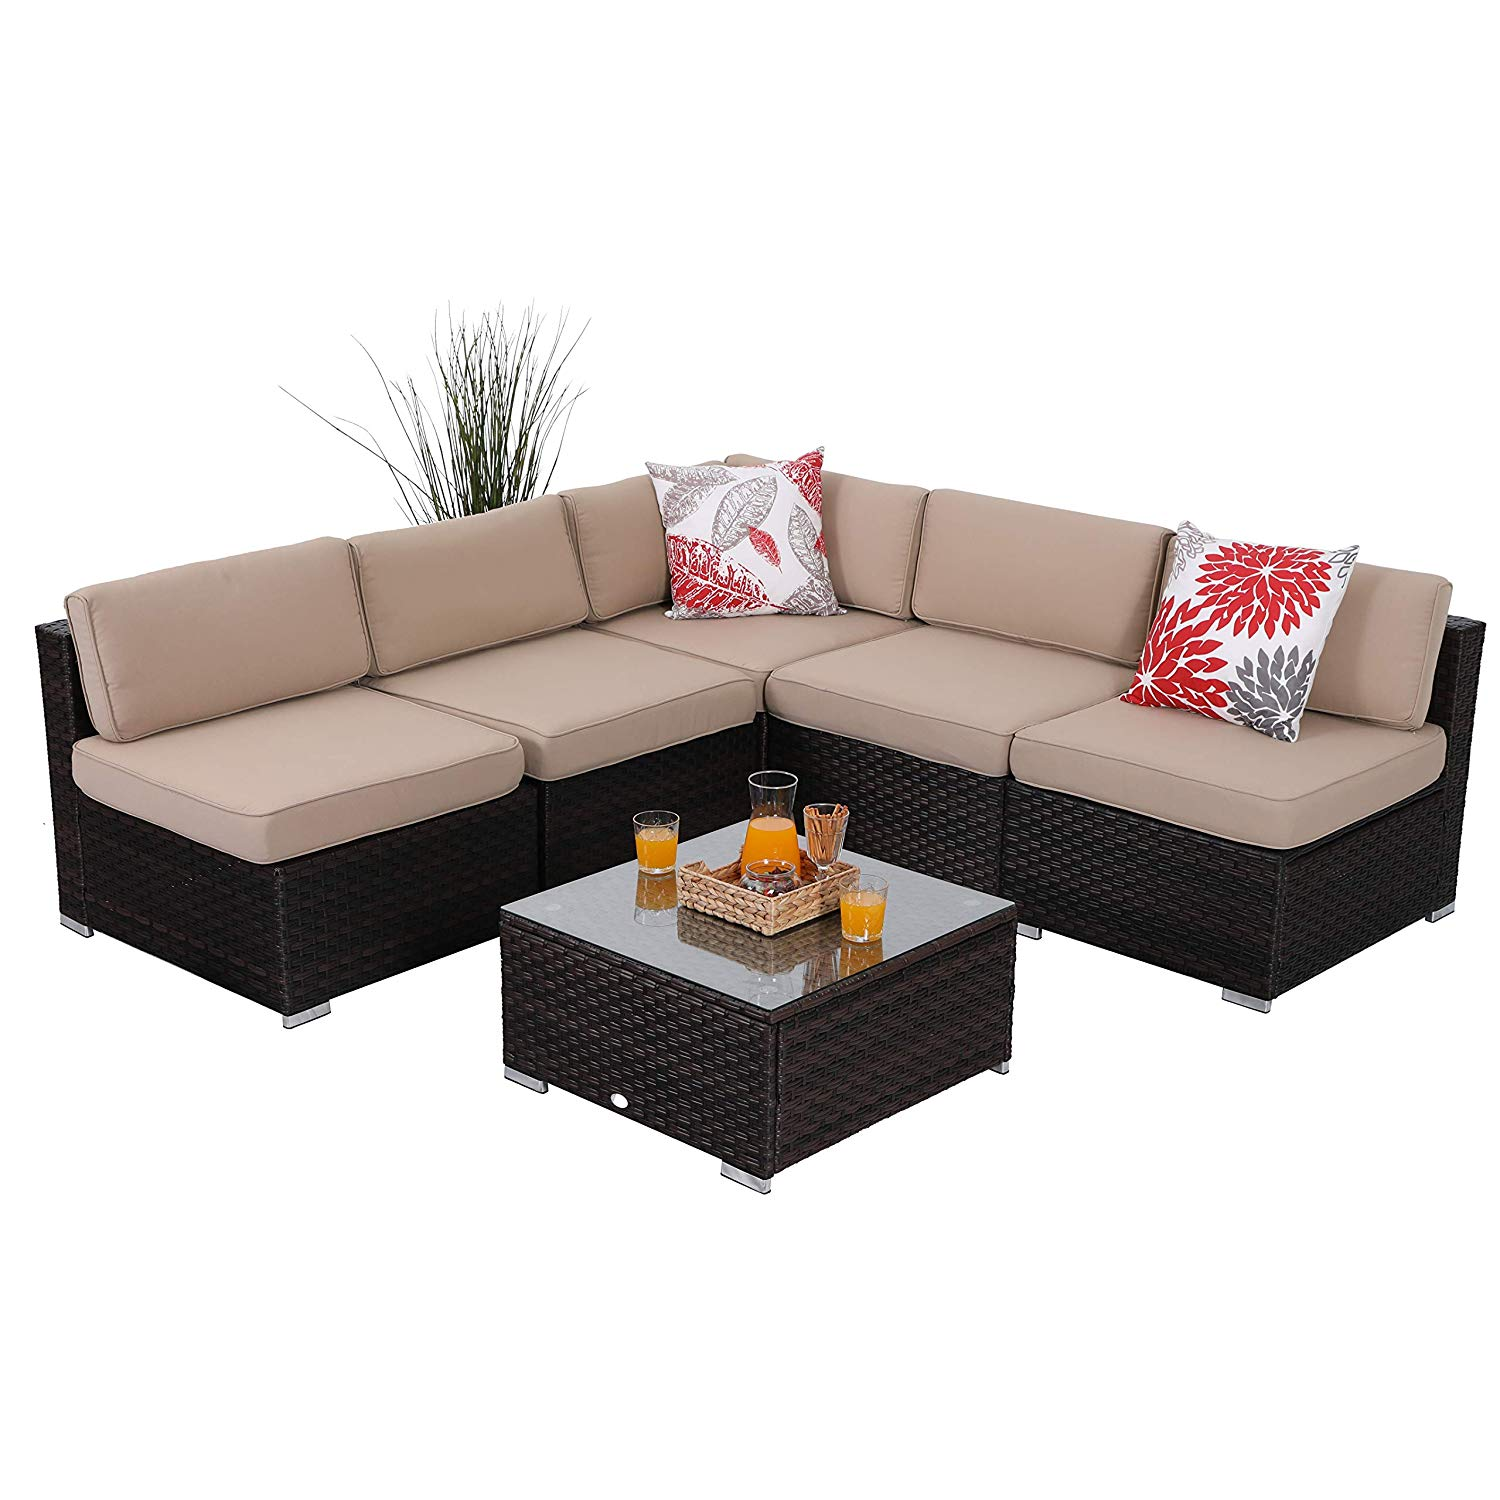 dff76c866798 Get Quotations · PHI VILLA 6-Piece Outdoor Furniture Set Rattan Sectional  Sofa Conversation Set with Glass Table